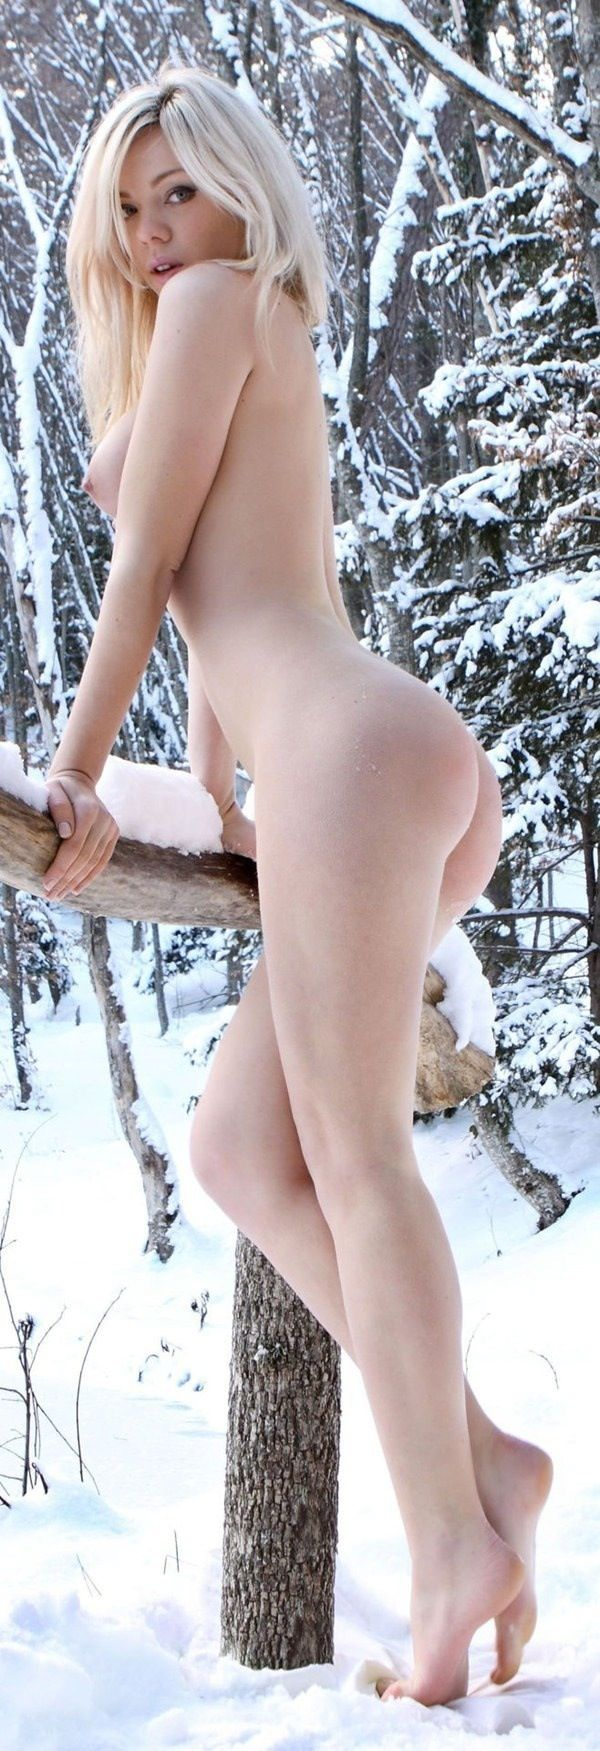 Virgin Princesses nude 71 best NUDE FEMALE ☺ images on Pinterest | Good looking women, Beautiful  women and Curves